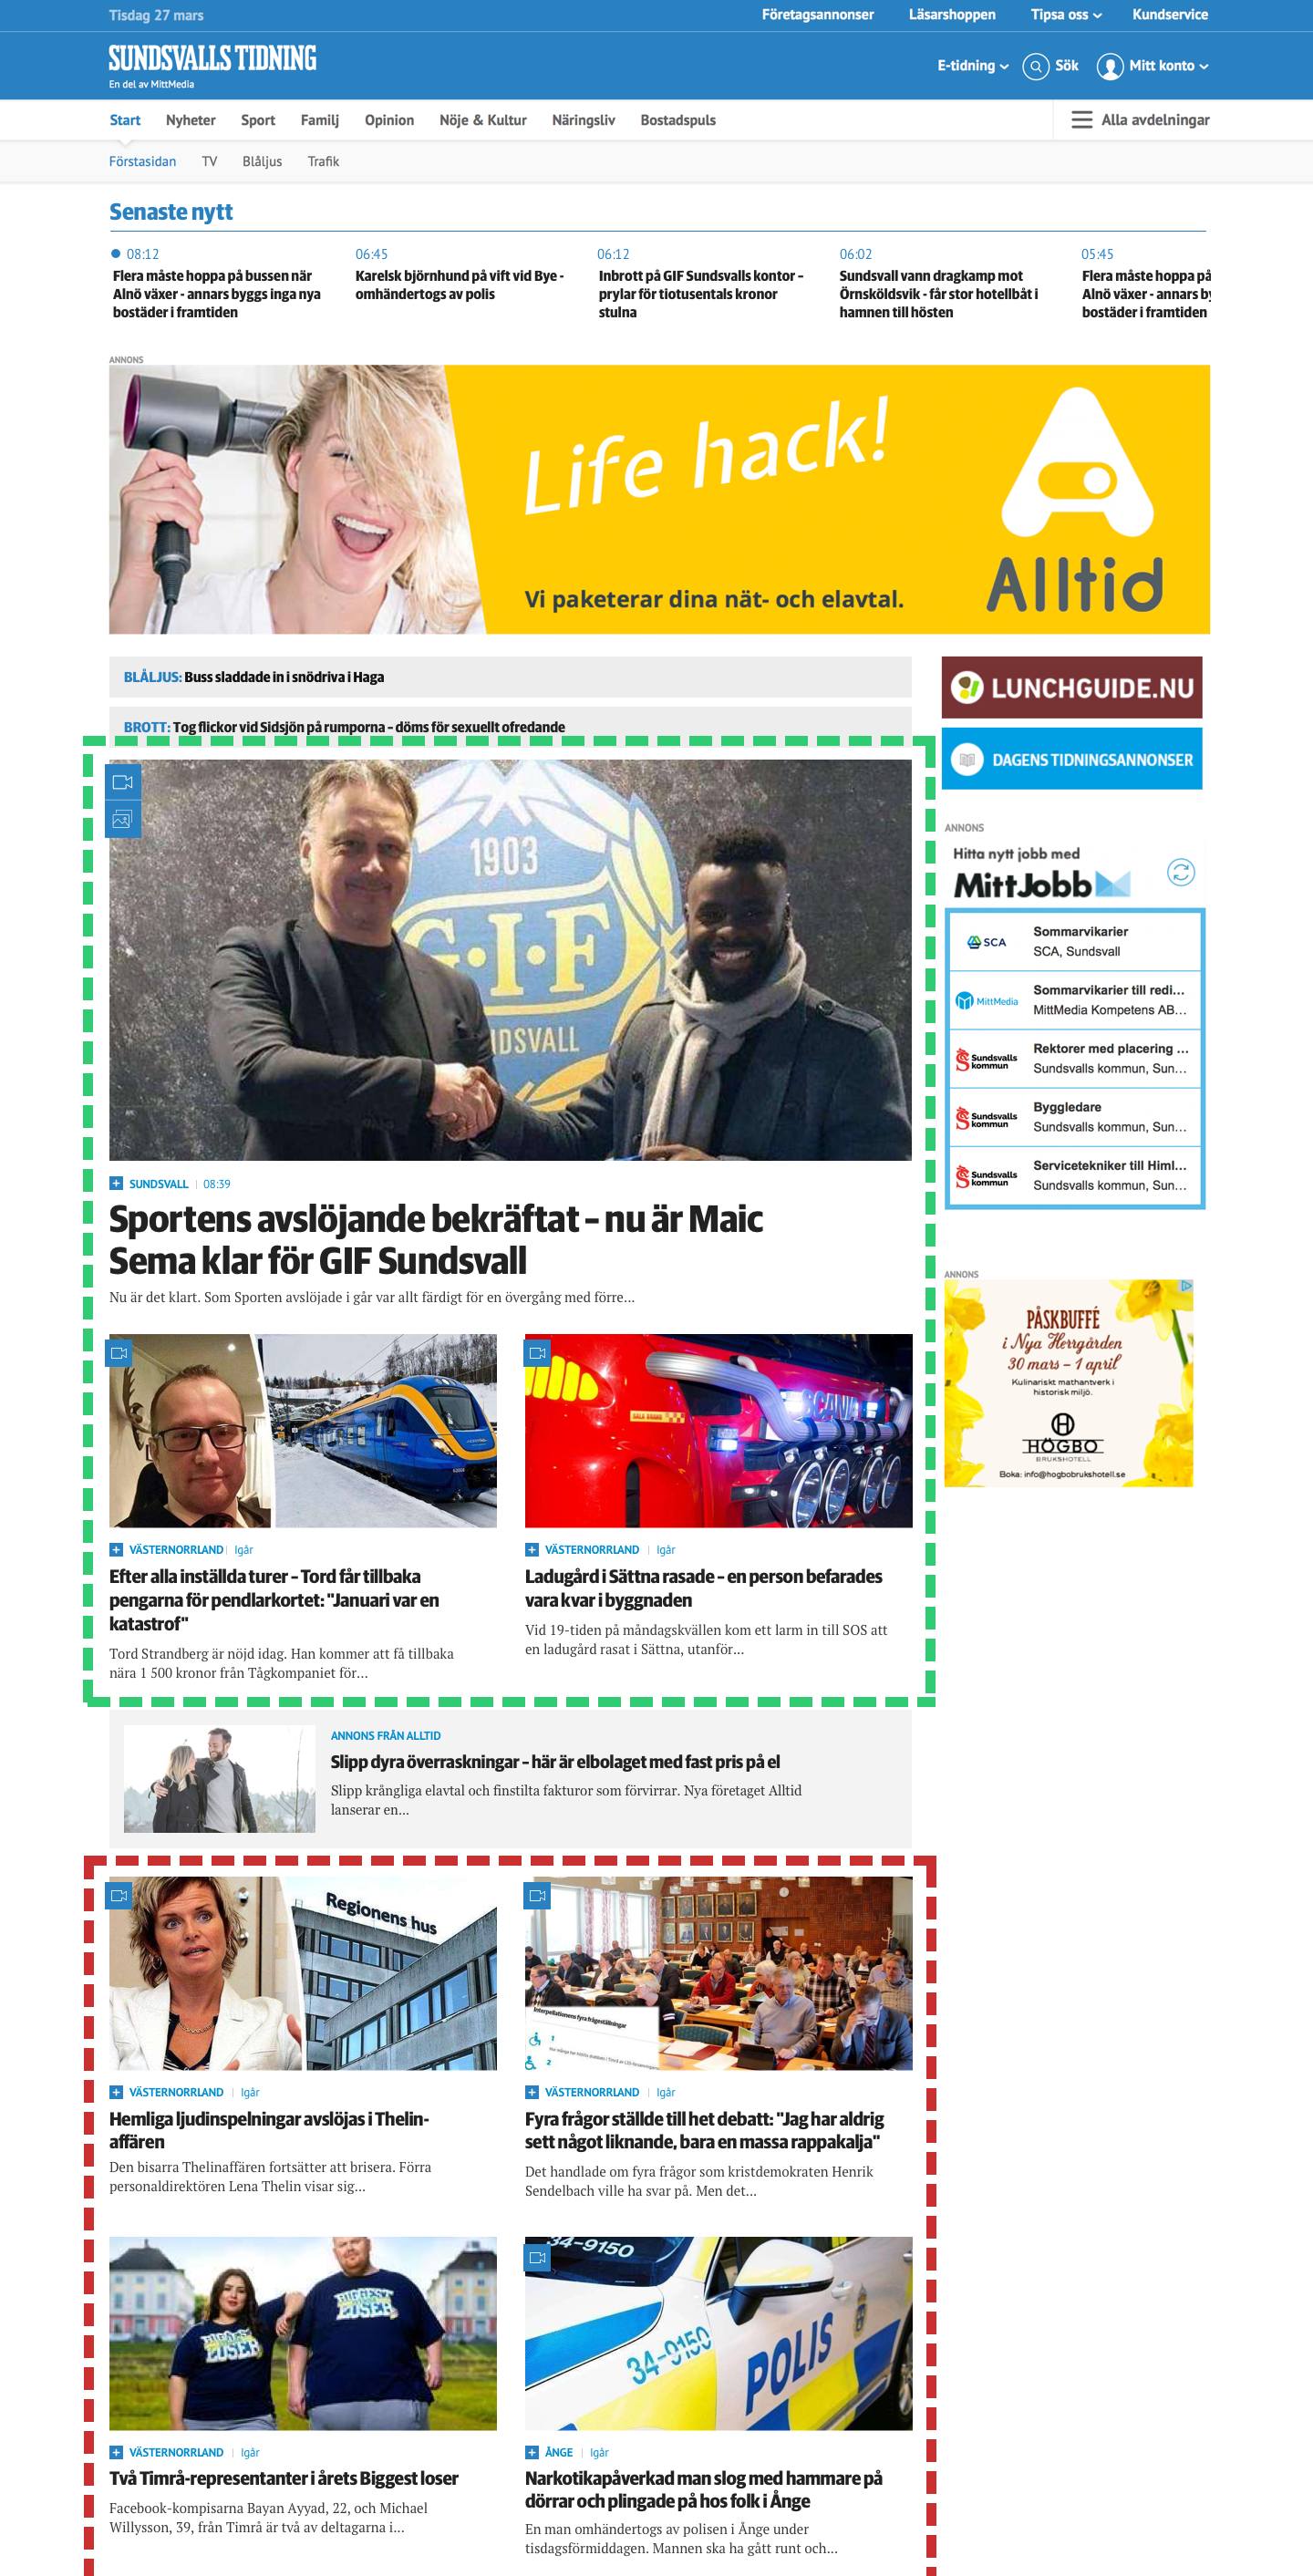 Why Mittmedia simplifies the startpage and is building a personalized newsfeed